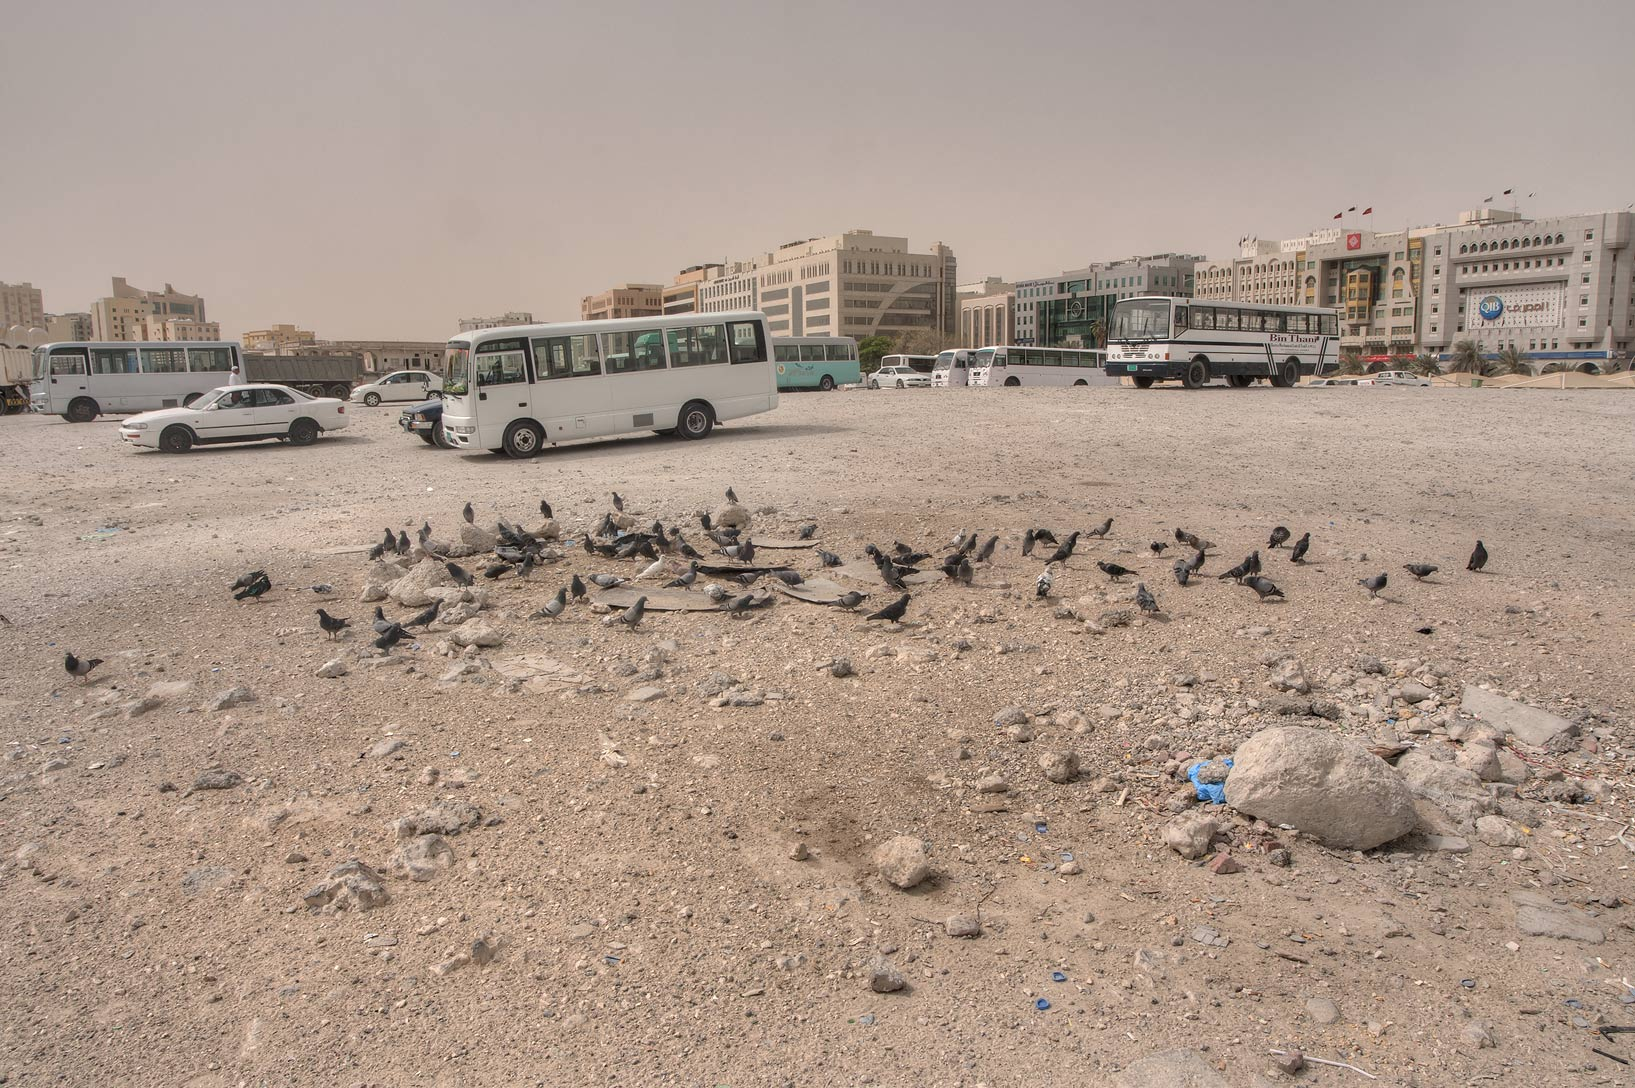 Stones remaining from an old cemetery on Al Ghanim Karwa bus station. Doha, Qatar